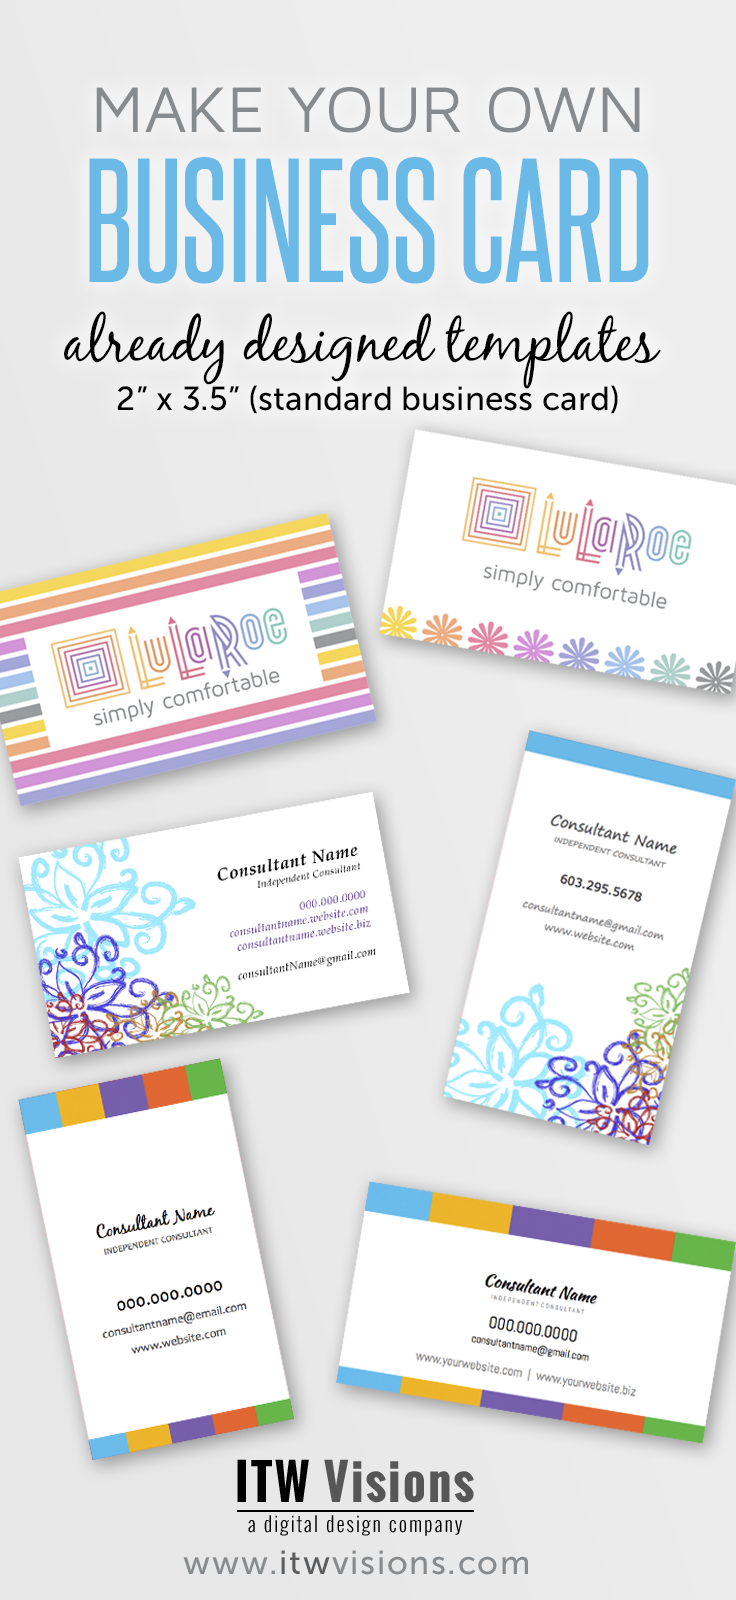 Make Your Own Business Cards Already Designed Templates For Lularoe Fashion Lularoe Business Cards Free Business Card Templates Lularoe Business